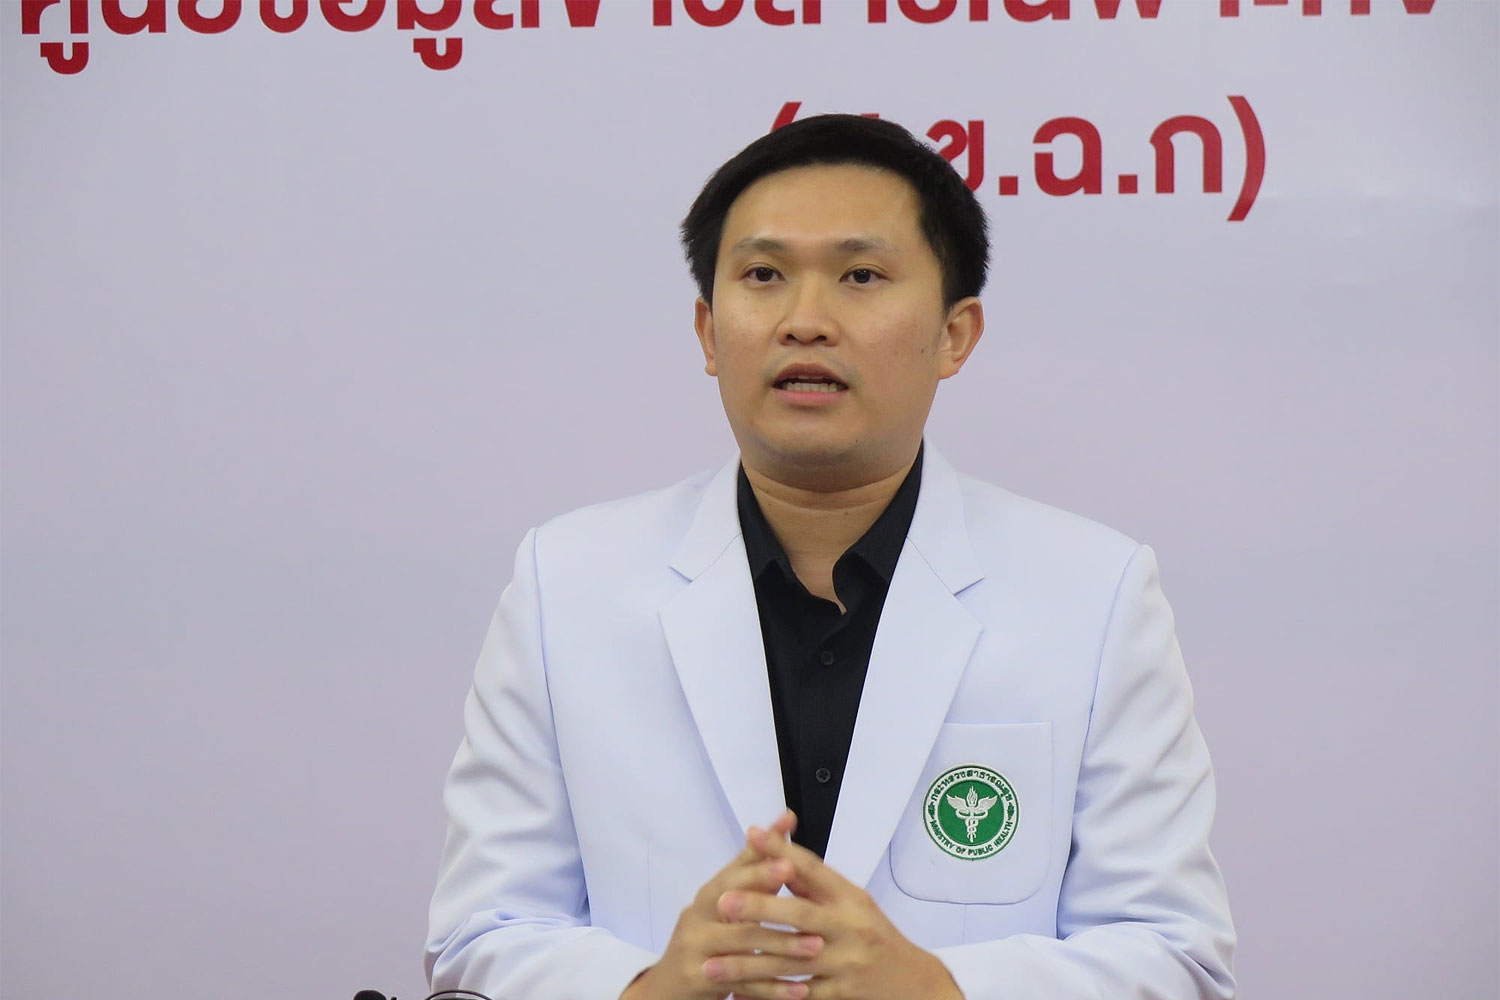 Dr Kittipan Chalom, assistant to the chief of the public health office of Chiang Mai, declares the province is safe from the novel coronavirus. (Photo: Phanumet Tanraksa)